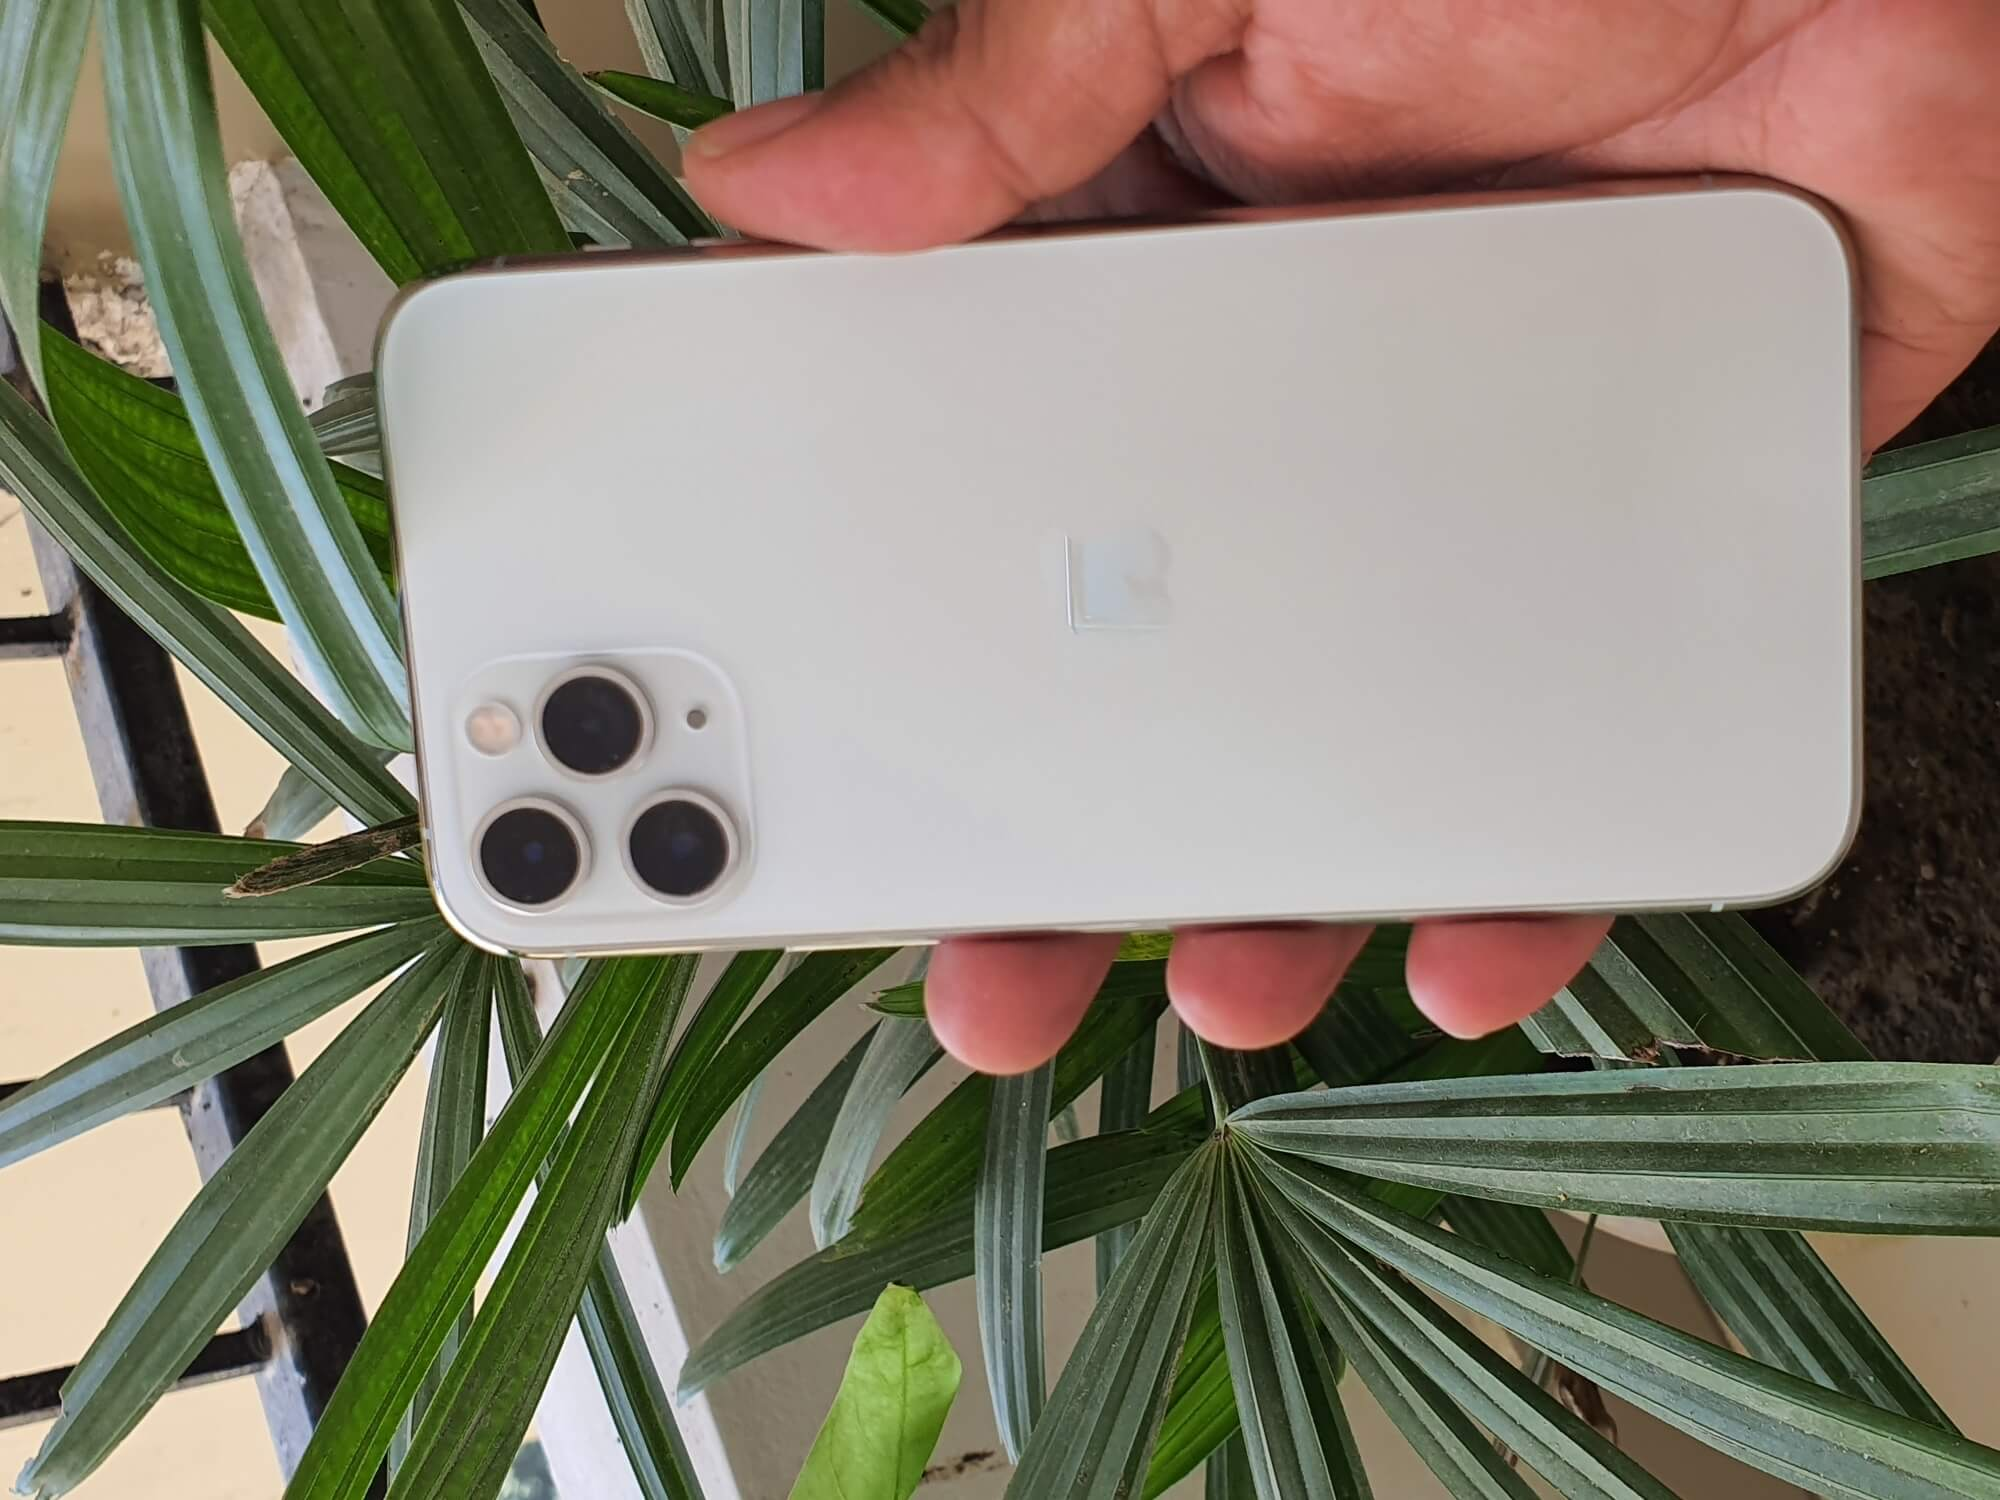 Apple's 'Assembled in India' iPhone 11s reach retail stores